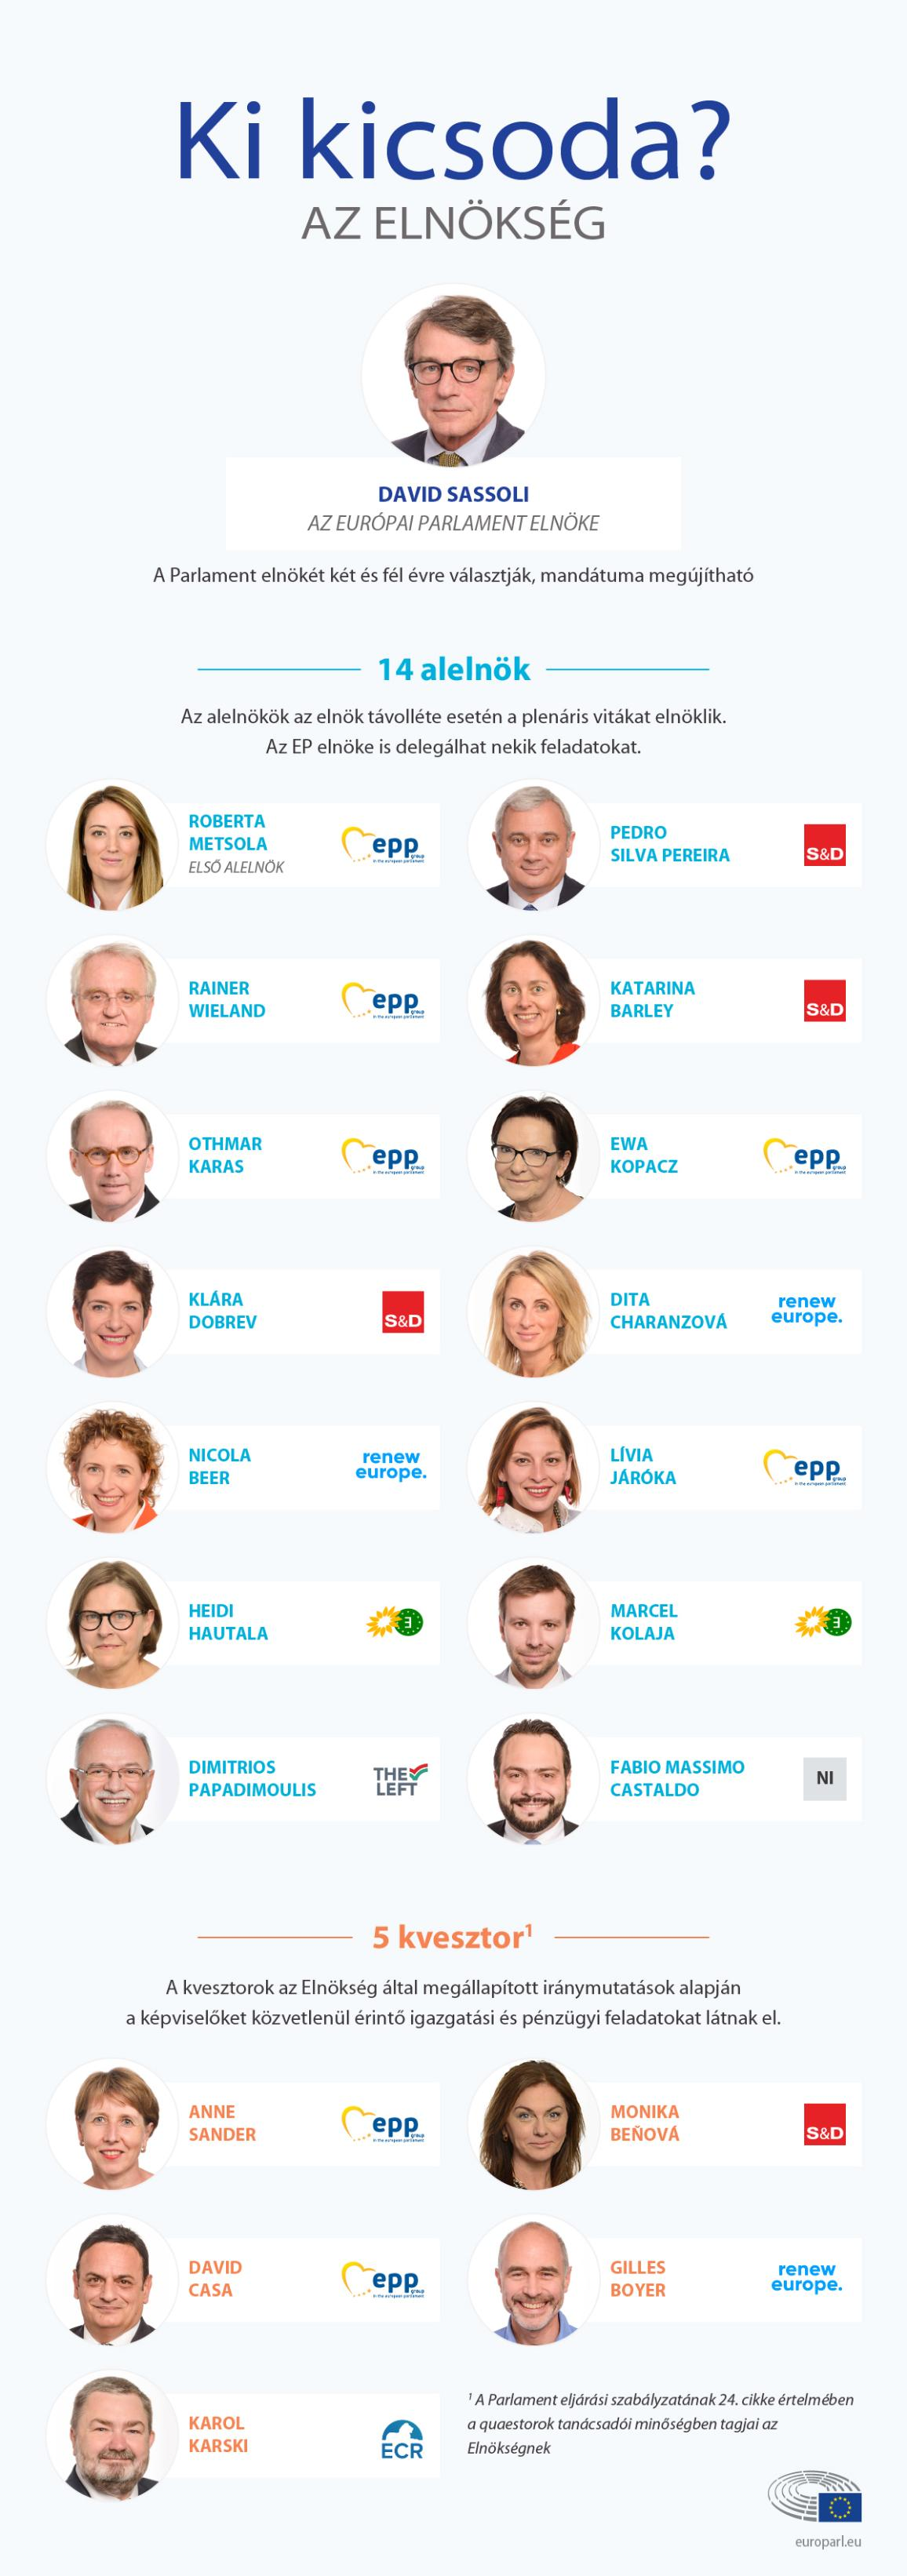 Infographic illustration on Who's who at the Bureau of the European Parliament